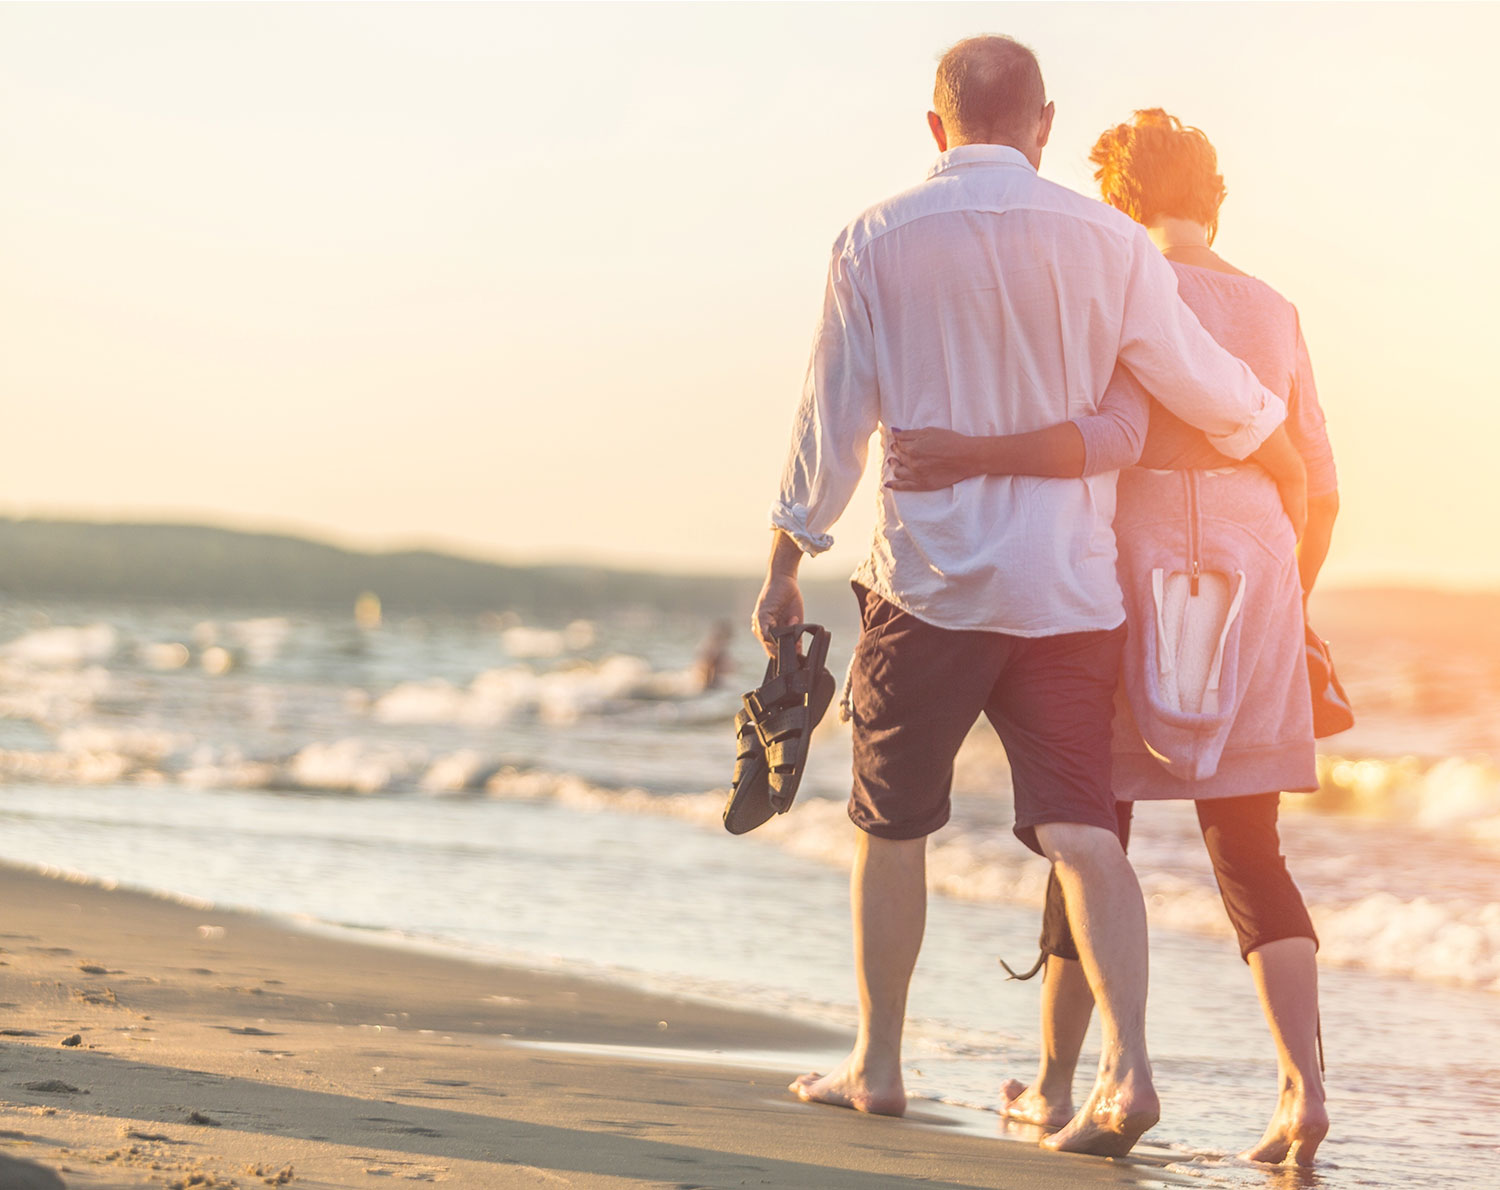 Close-up portrait of elderly couple hugging on seafront – moving pension payments abroad. RationalFX can help you transfer uk pension payments abroad. Move your UK pension living abroad or plan your pension when moving abroad.